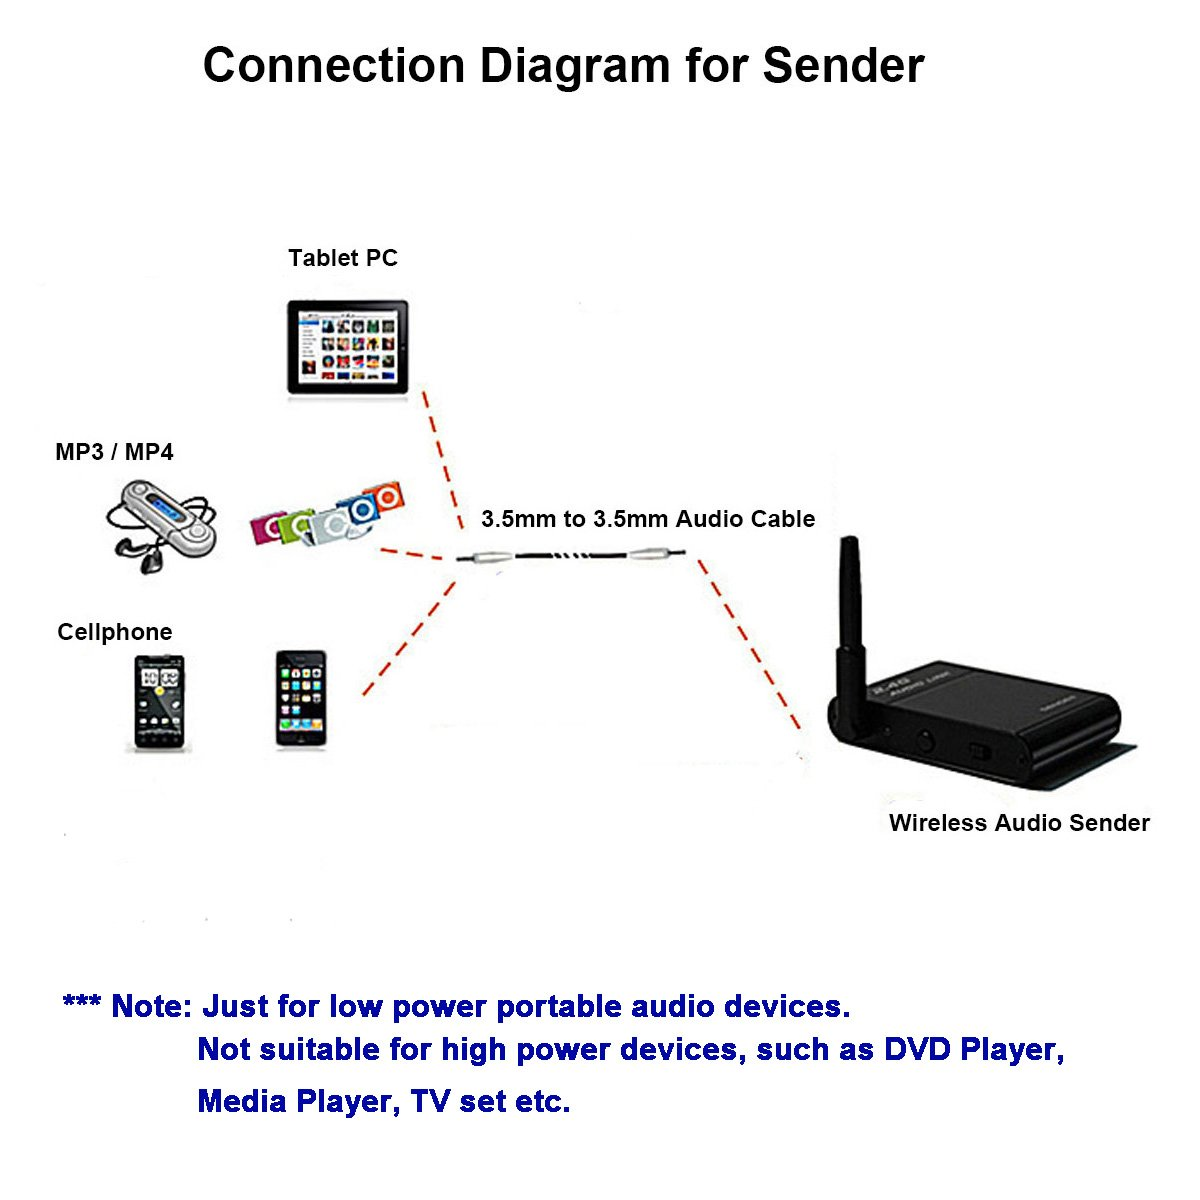 24 G Kabelloser Digitaler Audio Sender Und Elektronik Tv With Wireless Router Cable Connection Diagram